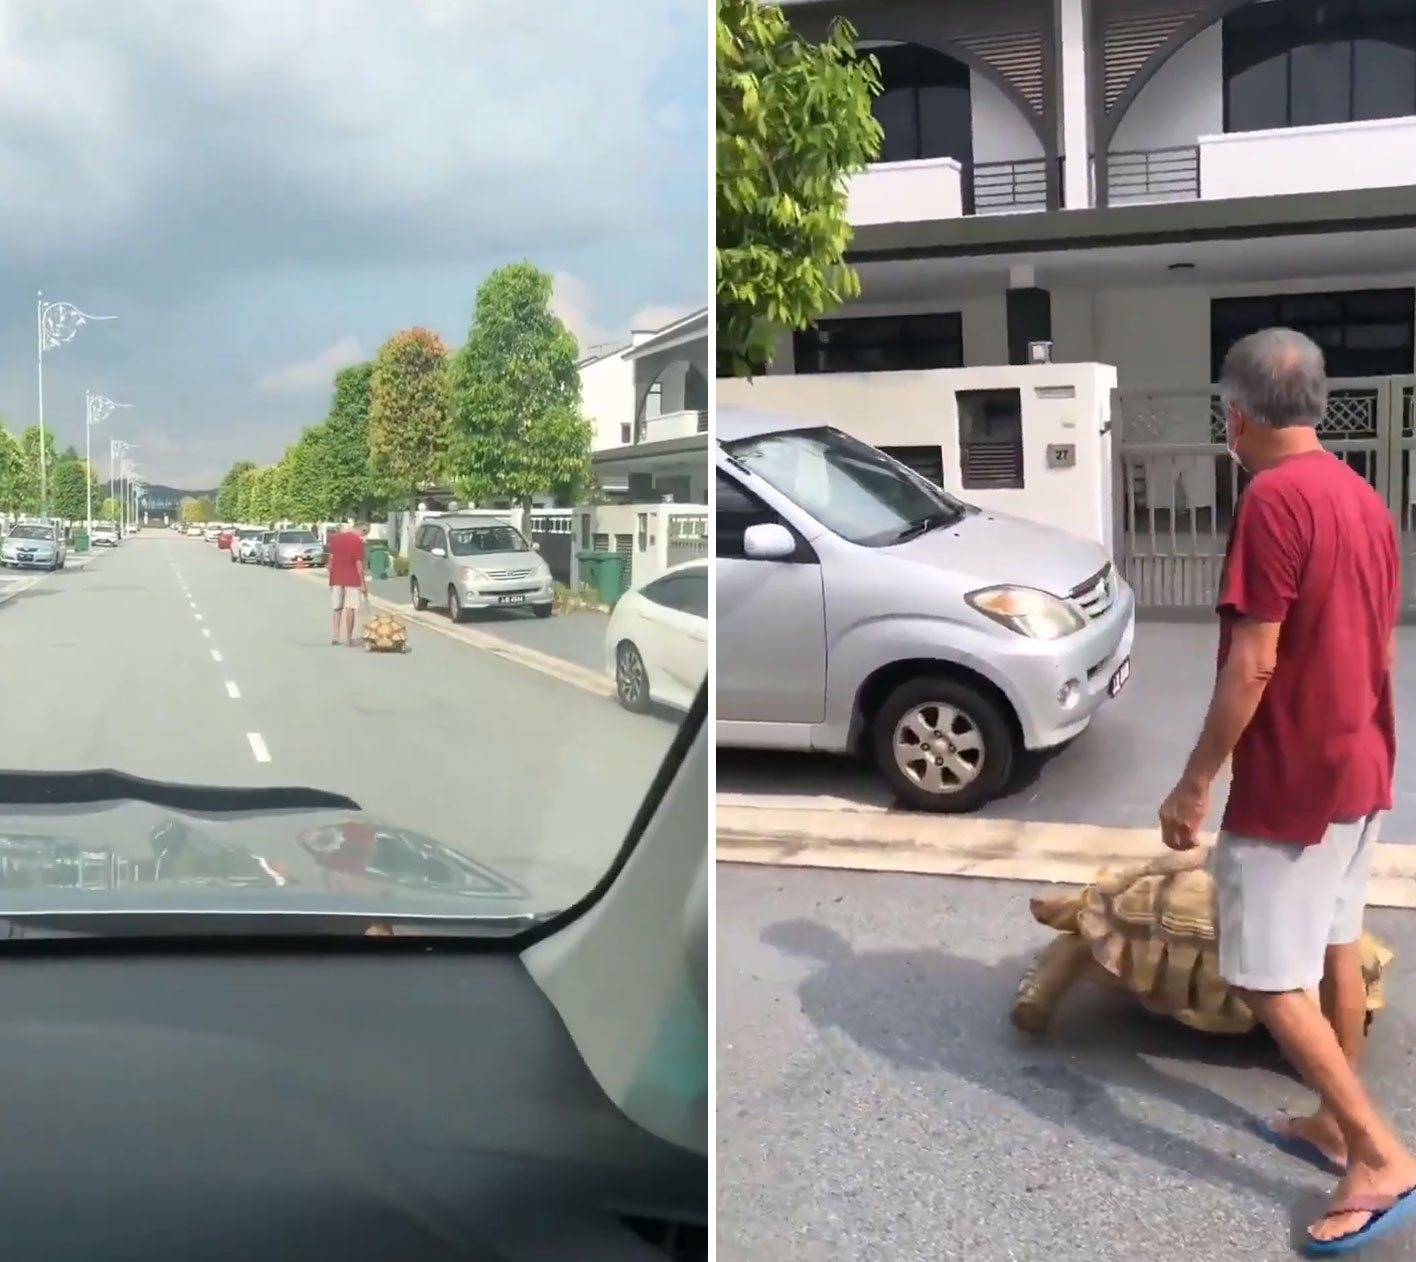 Video Captures Man Taking his Tortoise Out for a Walk in the Locality, Goes Viral